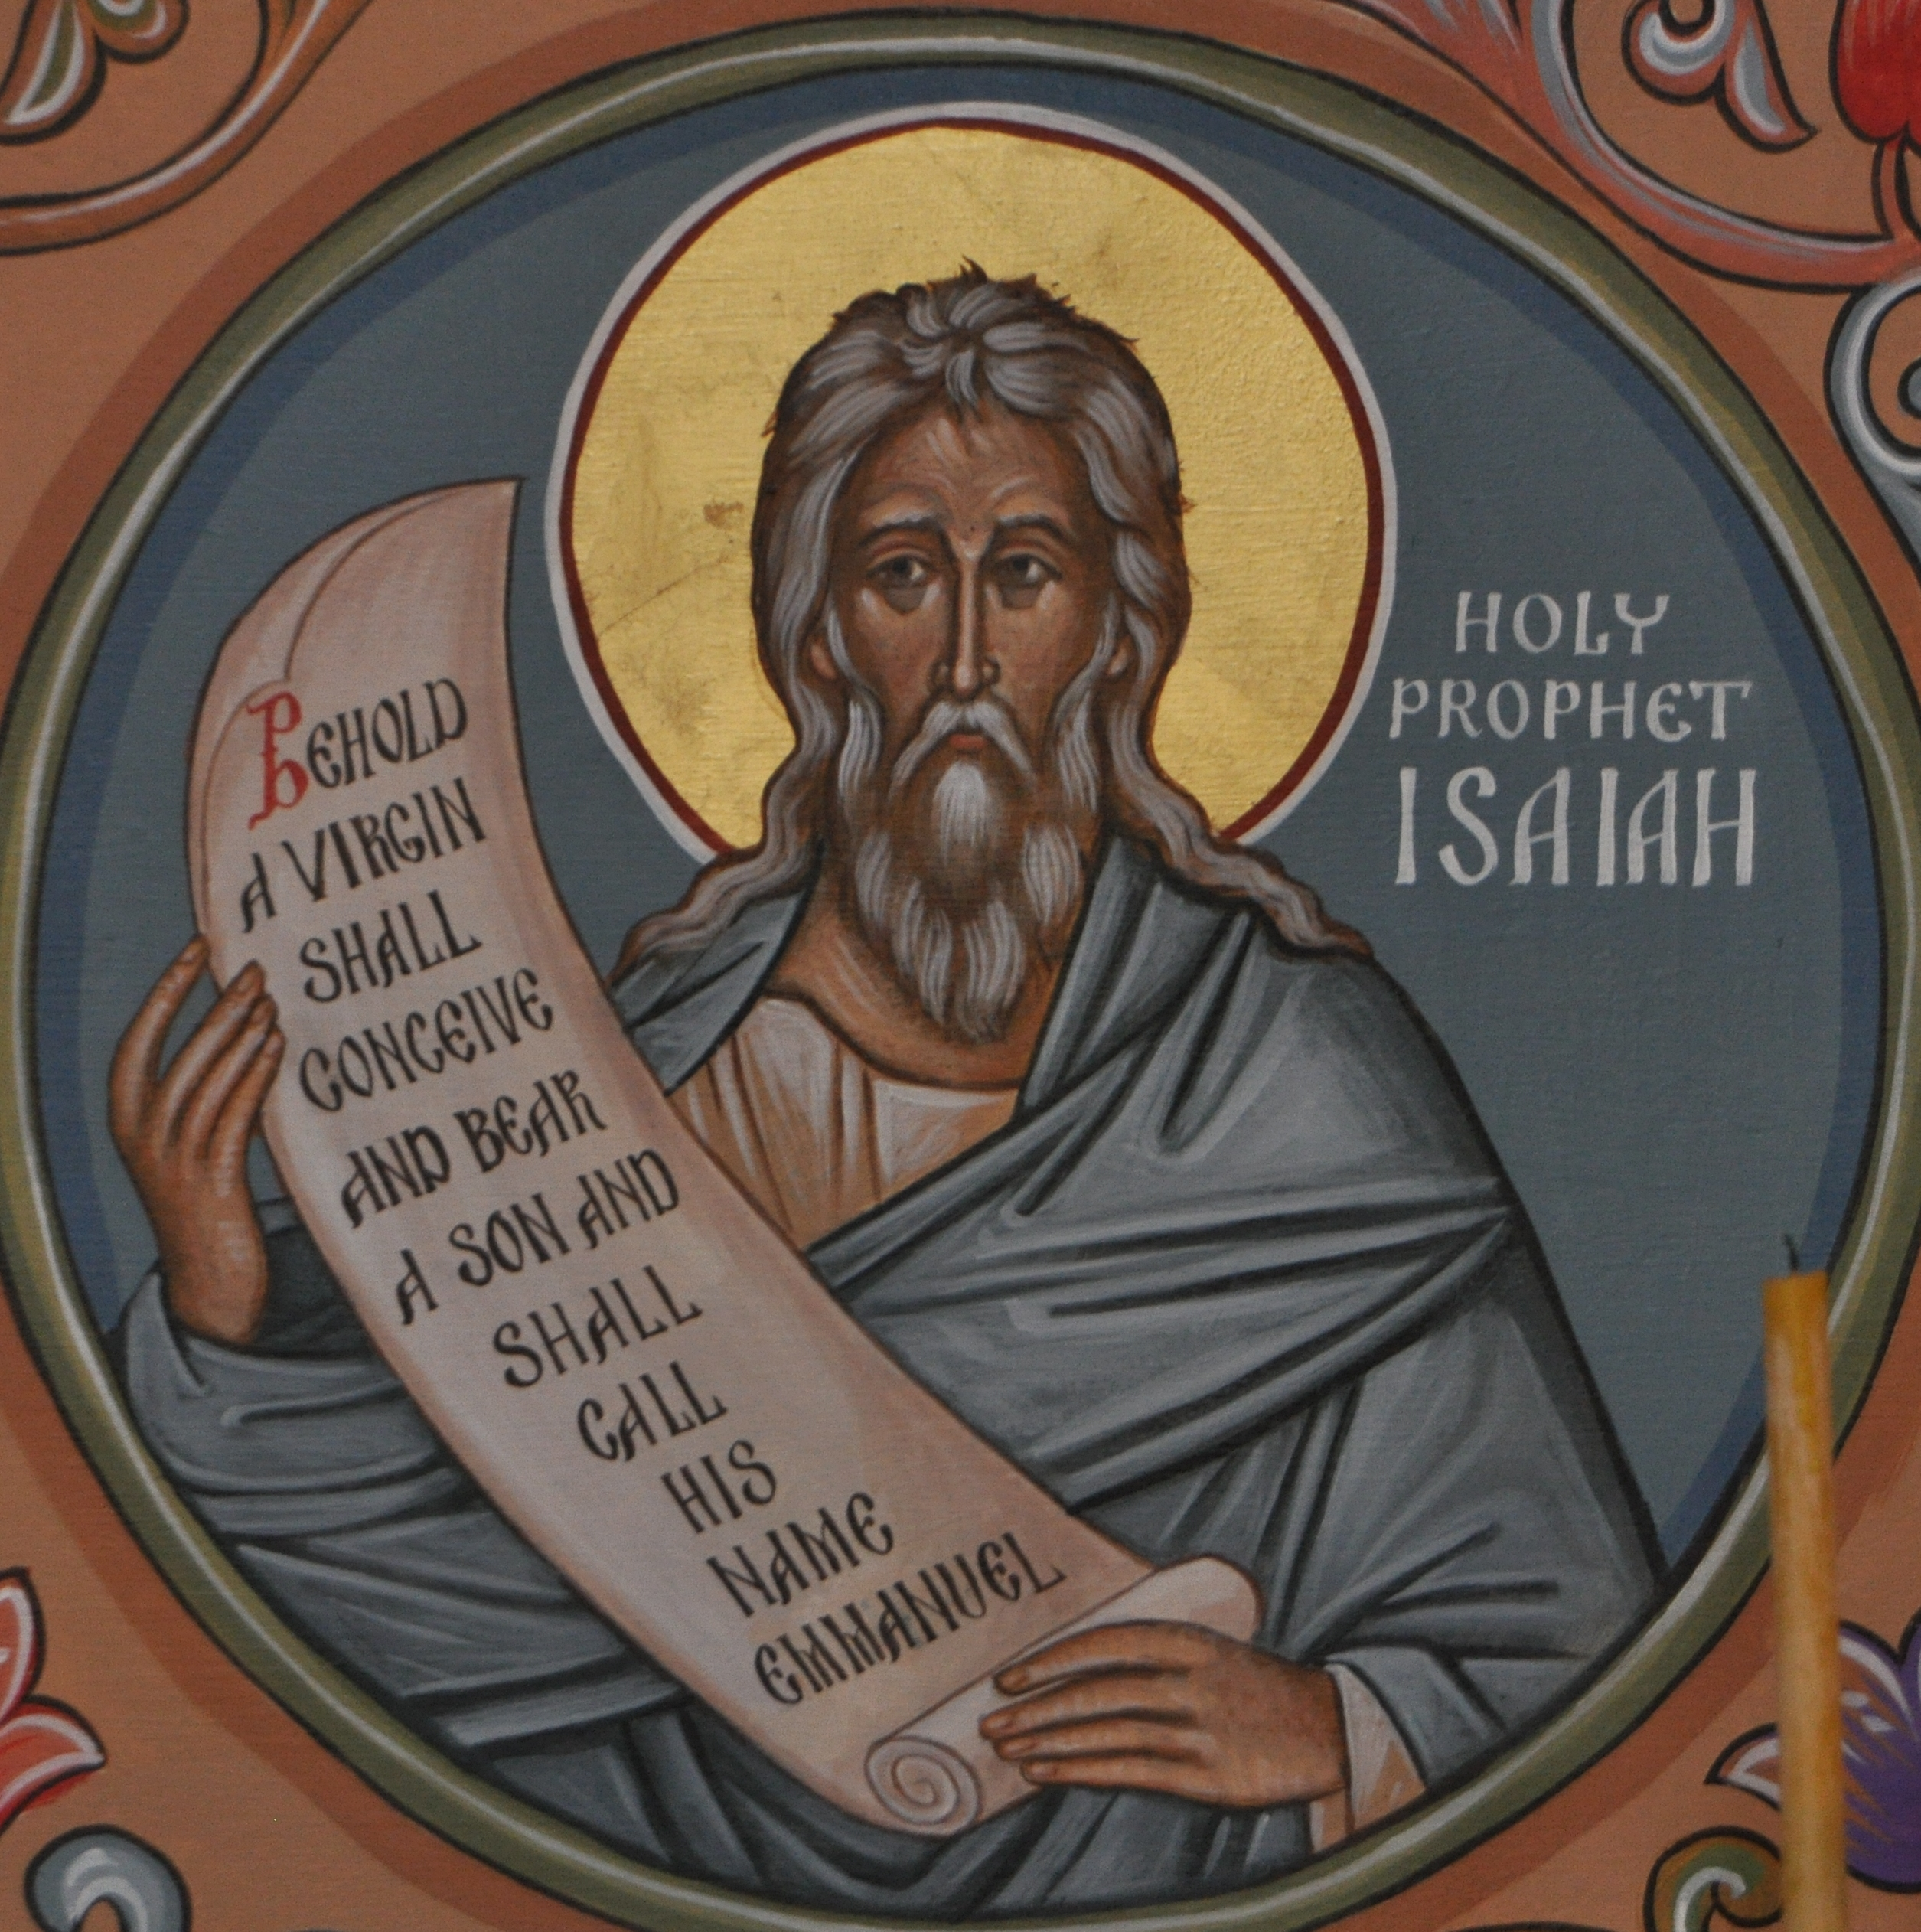 Did Archaeologists Prove the Existence of the Prophet Isaiah?